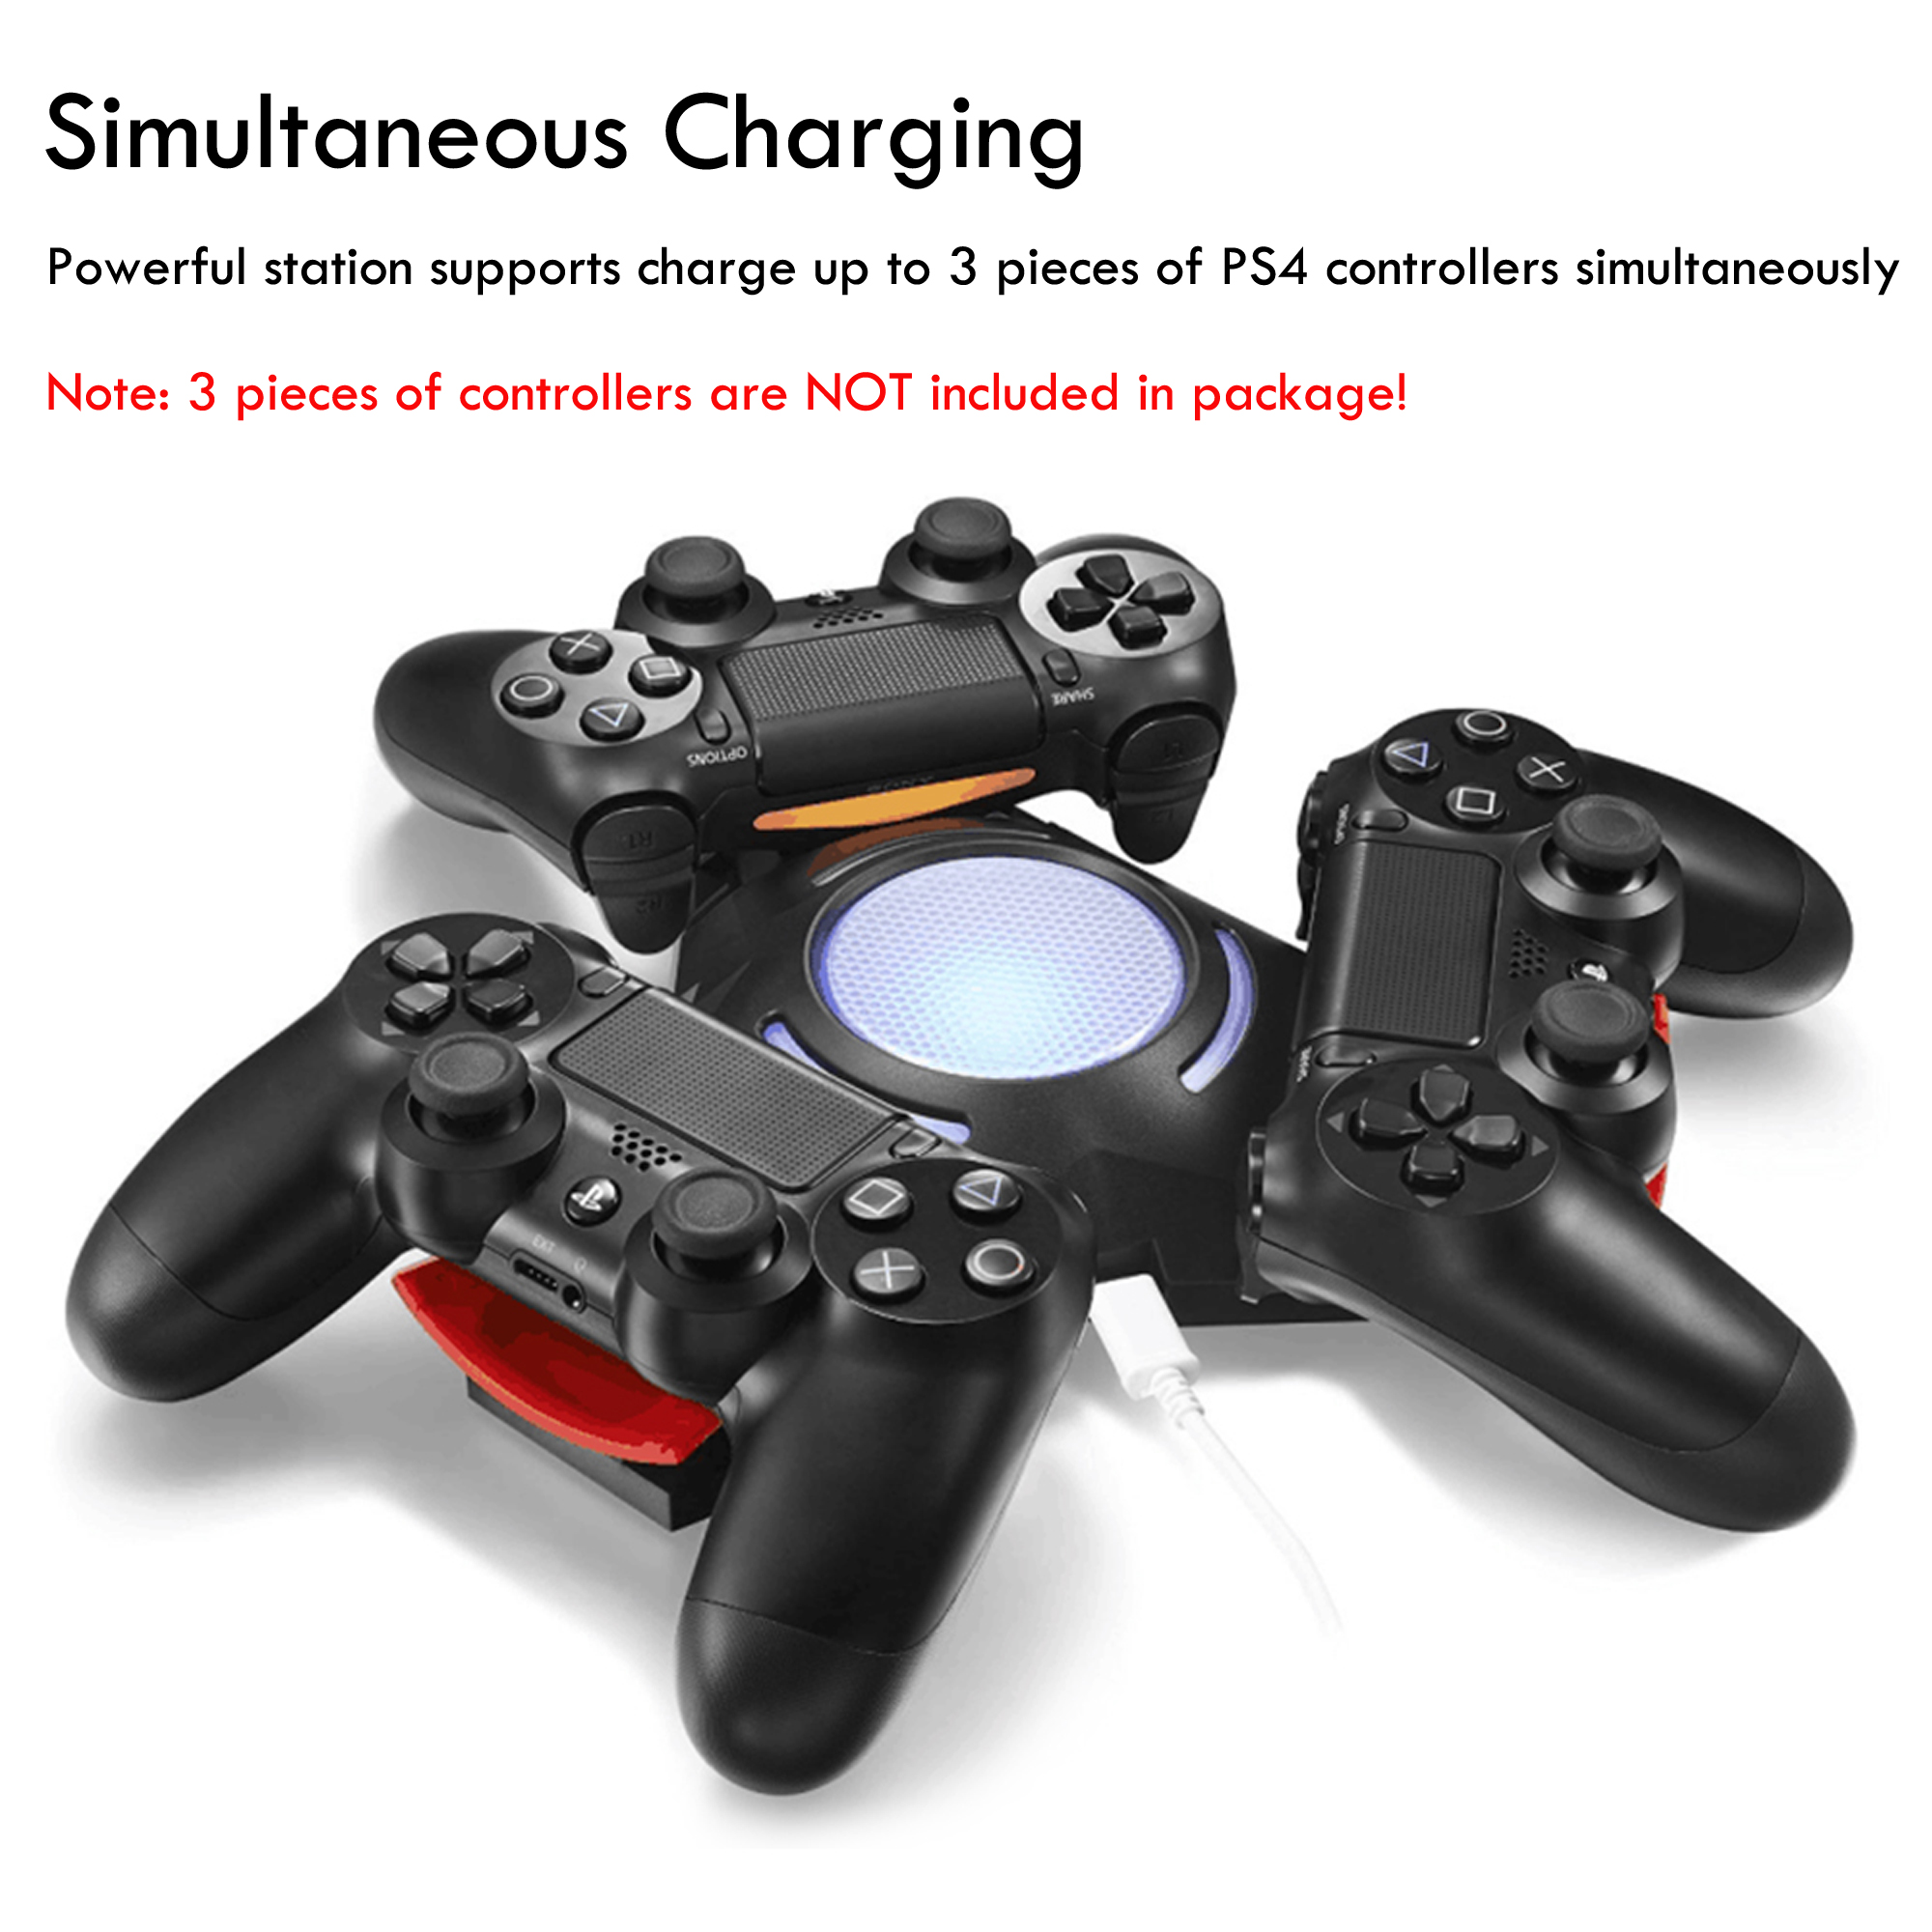 Ps4 Controller Dualshock Three Controller Triangle Dock For